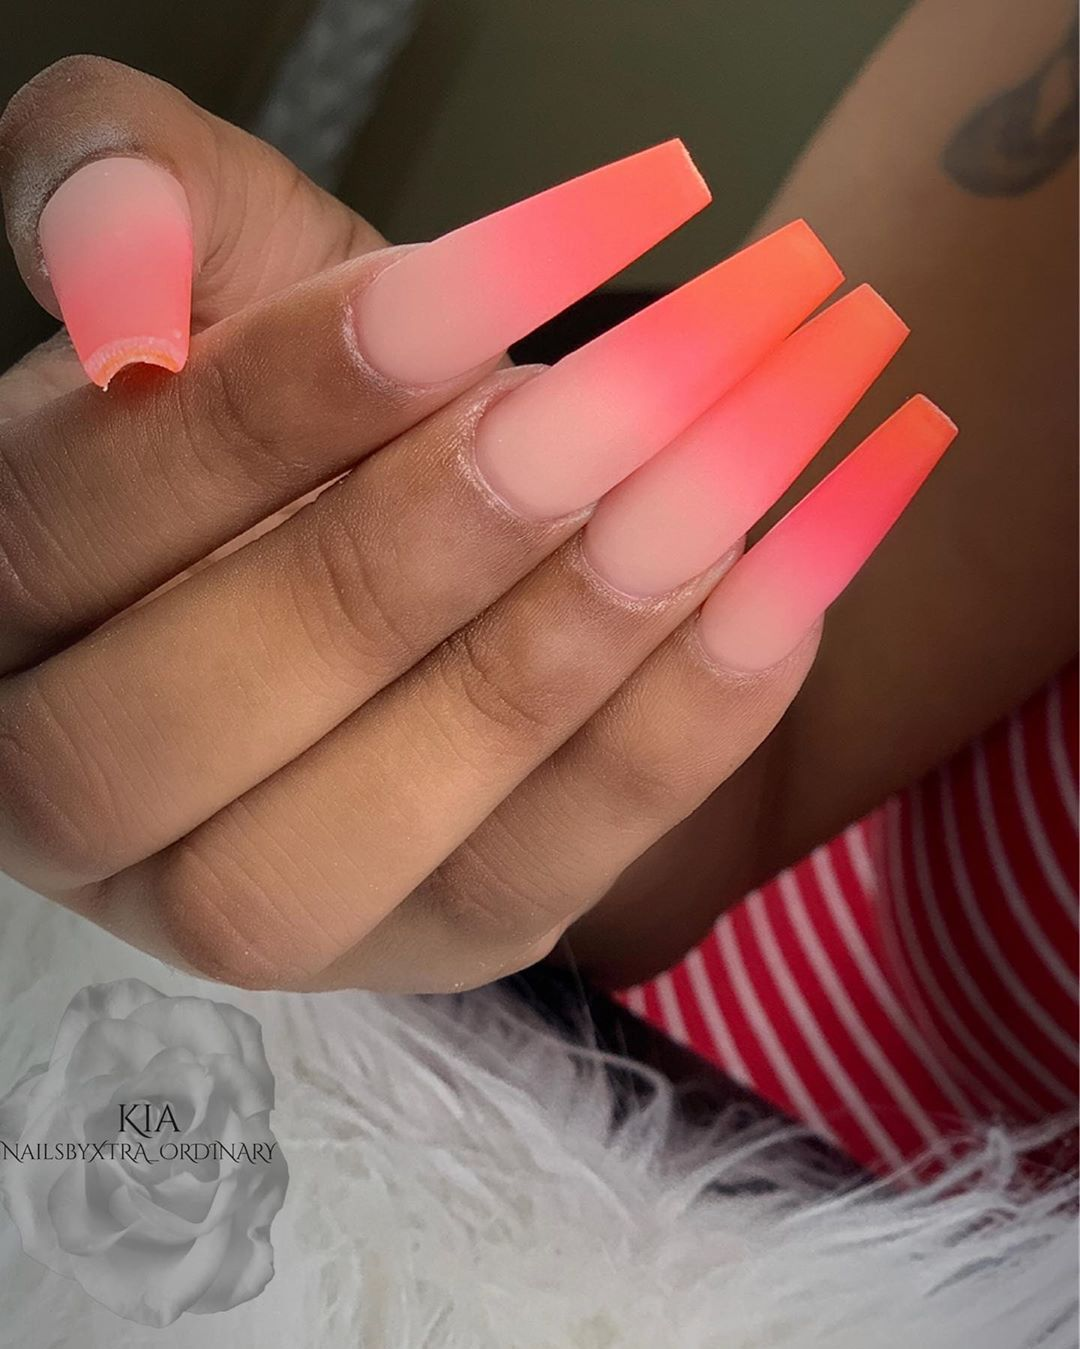 """Blended Nails : blended, nails, QUALITY, Nails, Cheap🙅🏽♀️, Instagram:, """"The, Secret, Ingredient, OMBRÉ, Blending, Consistently, 🤫💅🏽🥰, #Claws…, Nails,, Basic, Acrylic"""